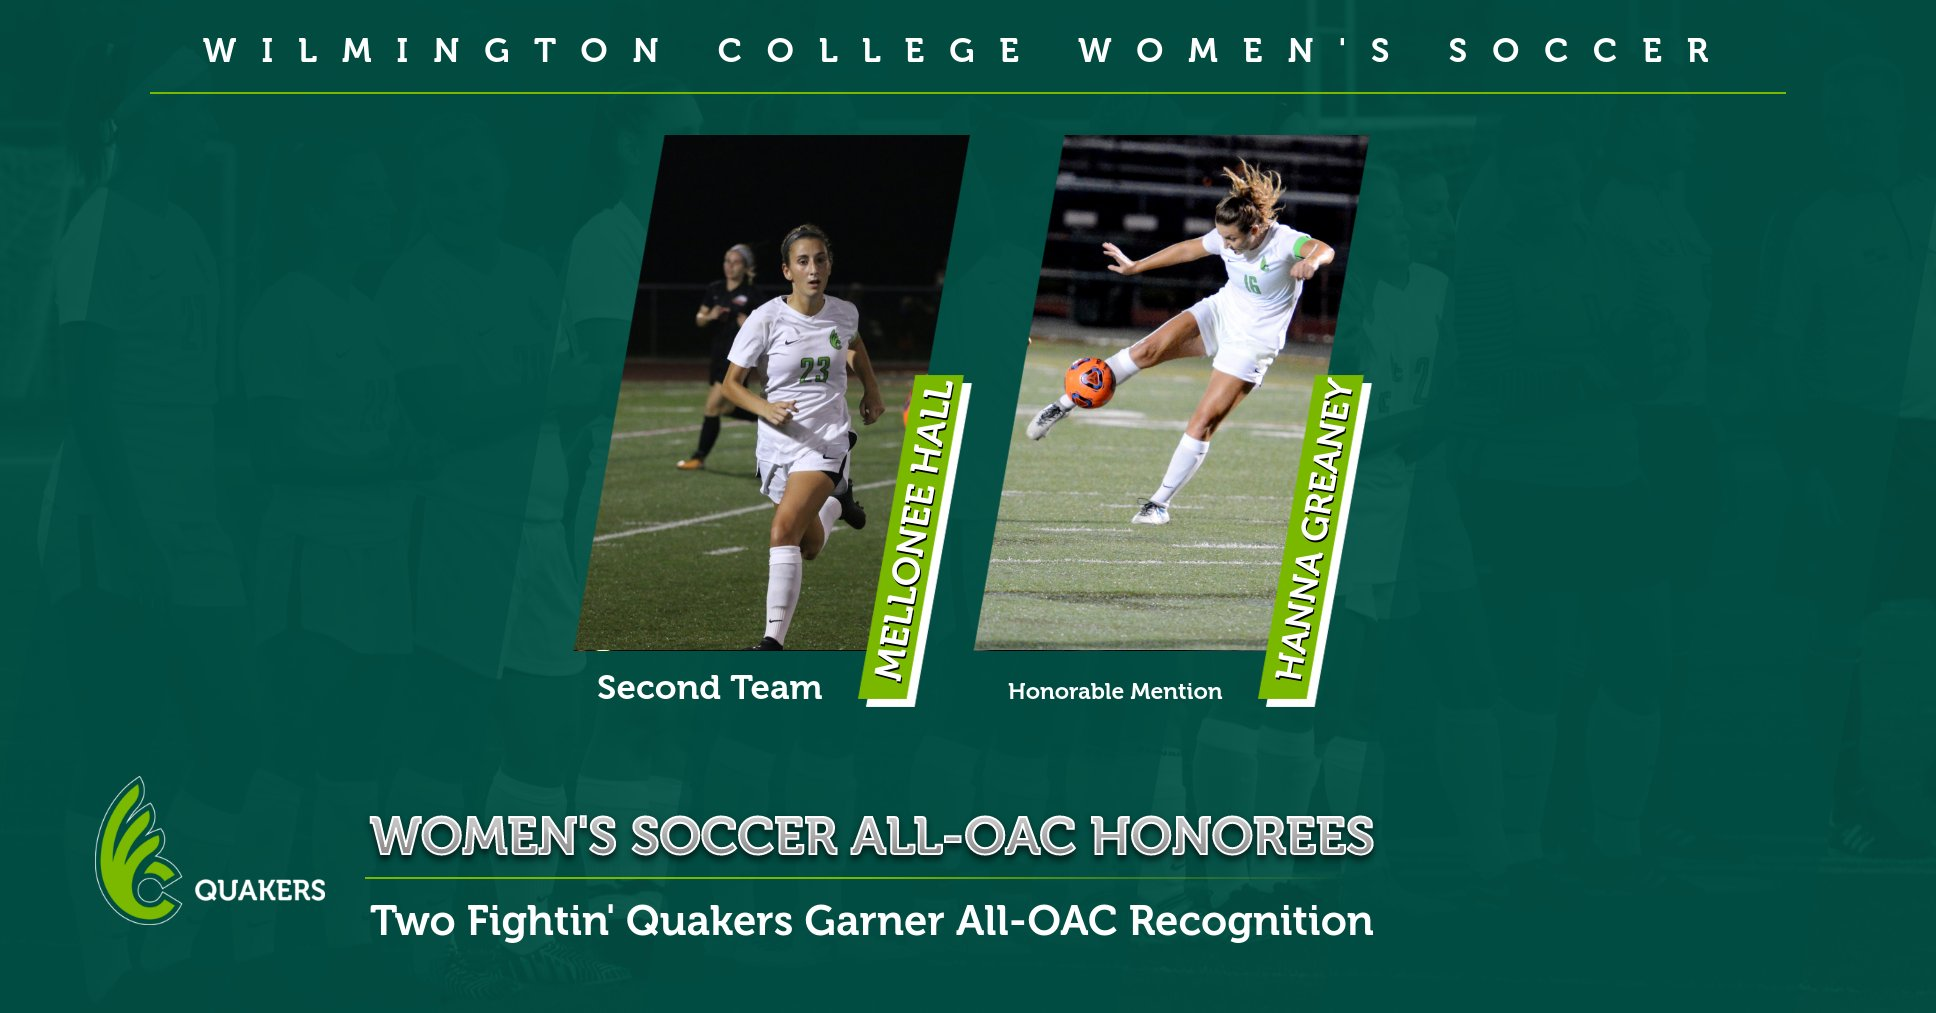 Hall and Greaney Earn All-OAC Honors for Women's Soccer